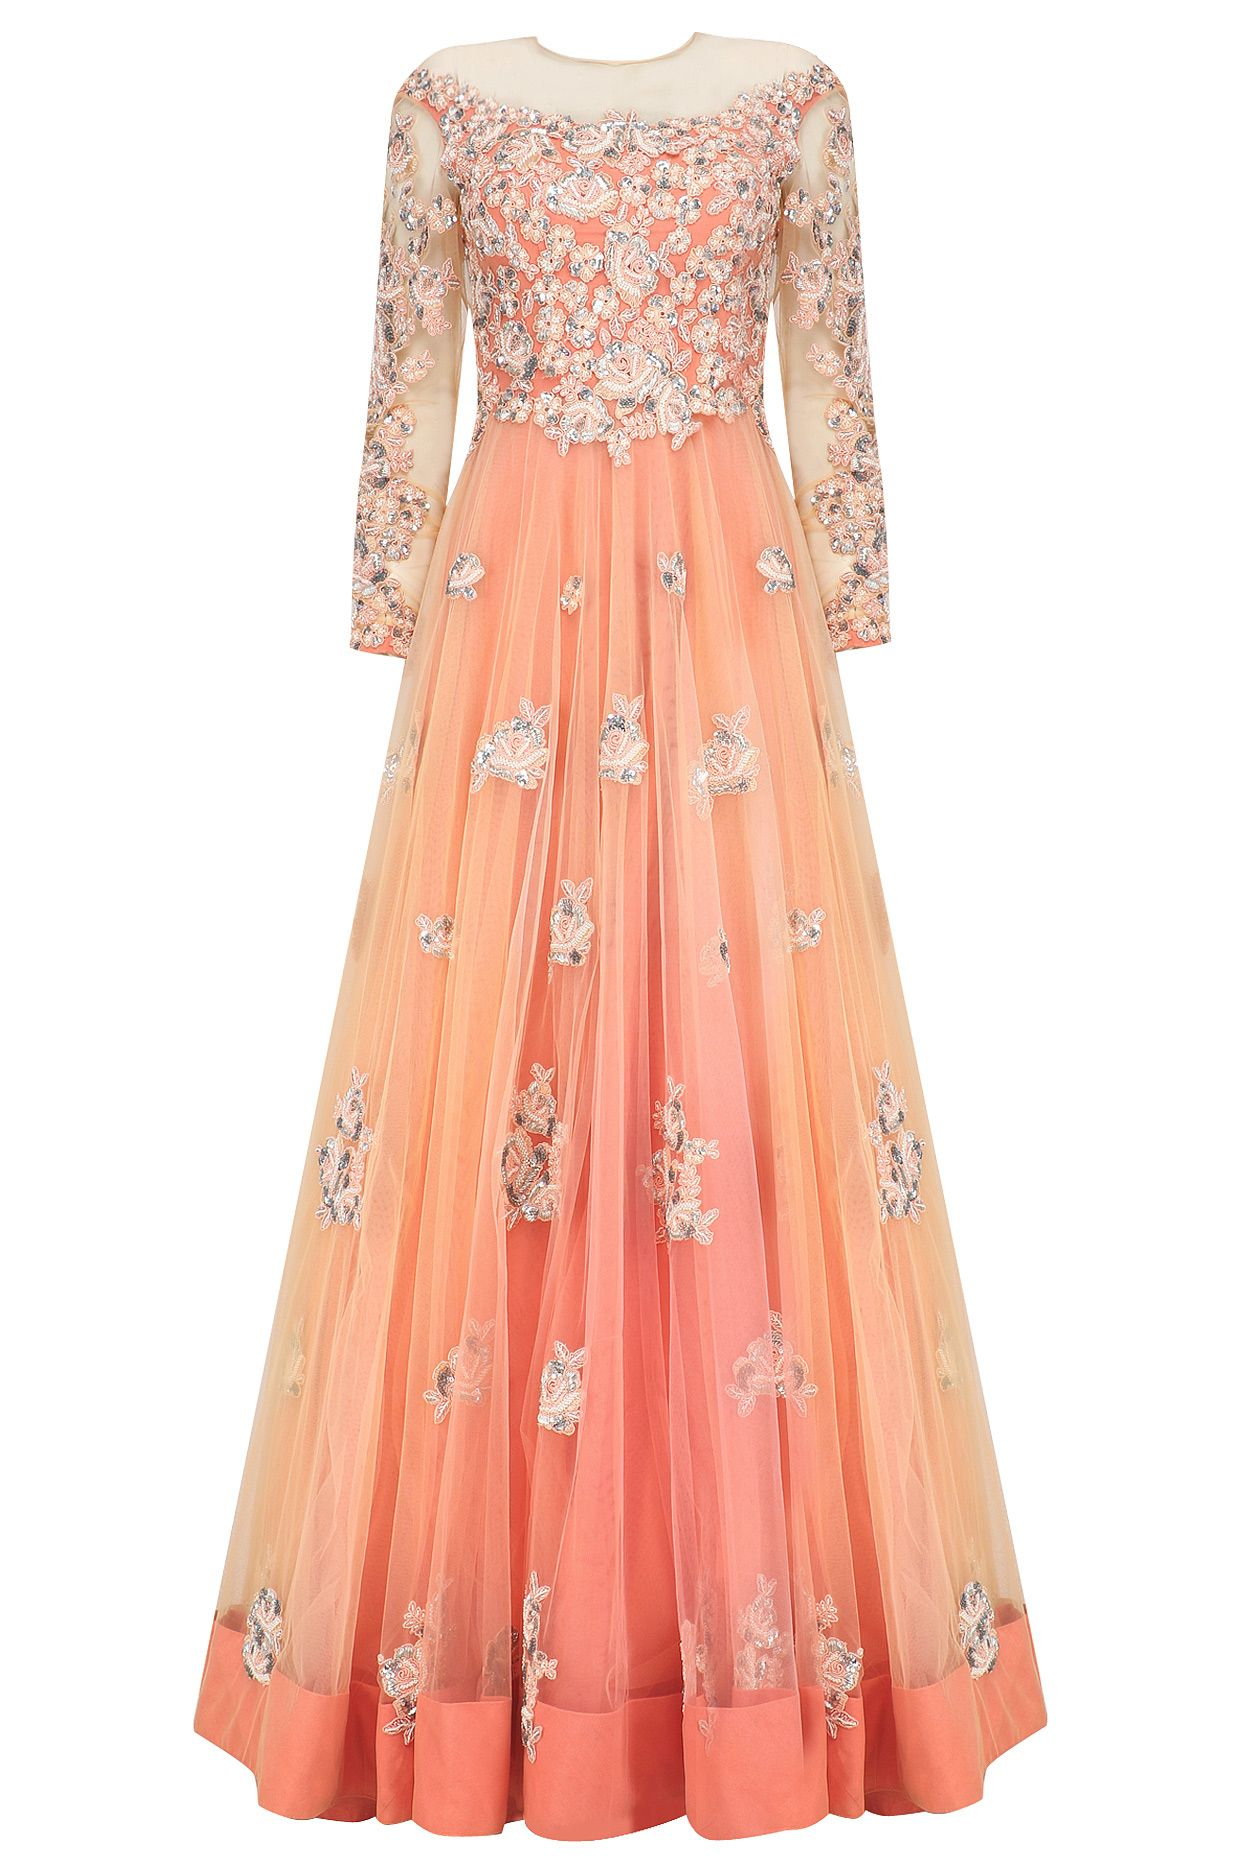 6a94d8cadea1b Peach and silver floral patchwork anarkali set available only at Pernia's  Pop Up Shop.